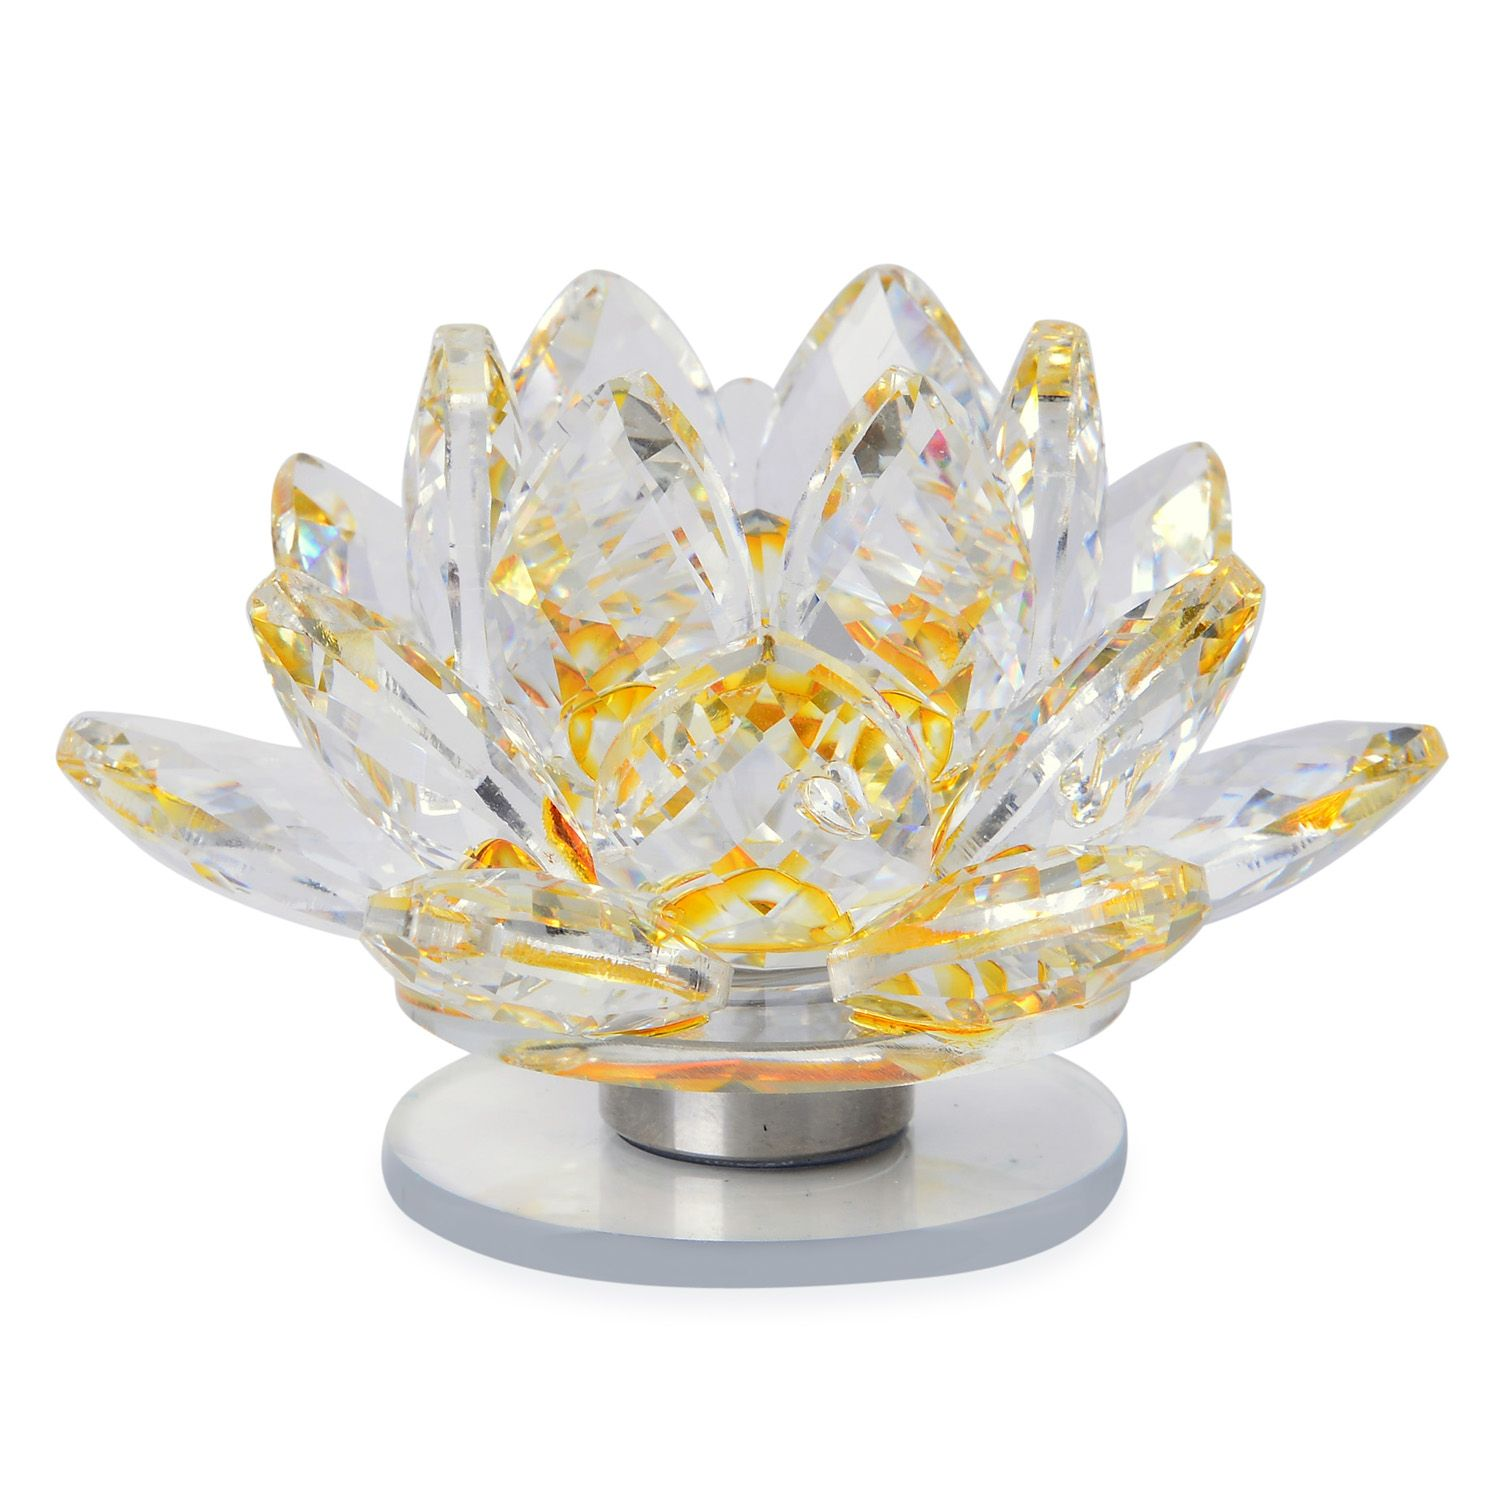 Deepaks Dazzling Deal Champagne Glass Lotus Flower With Led Light